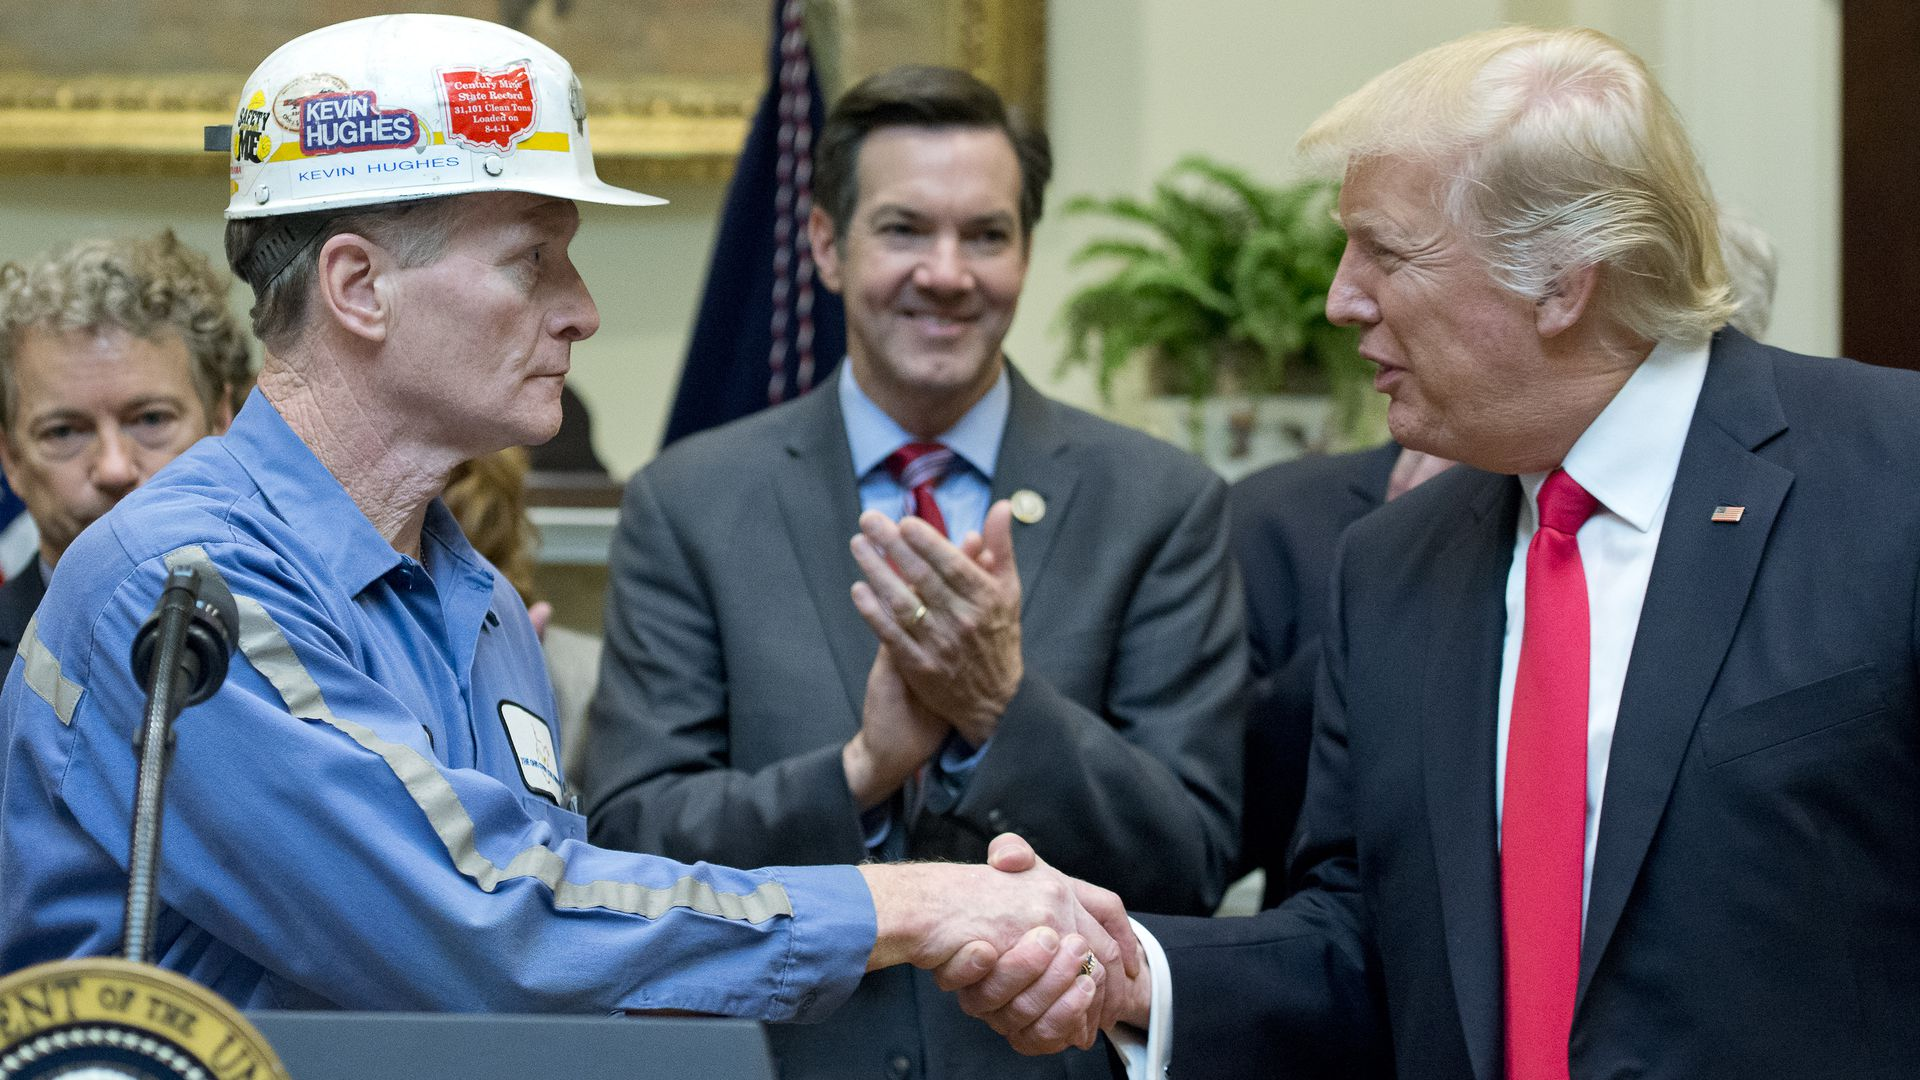 Trump shaking hands with a coal miner